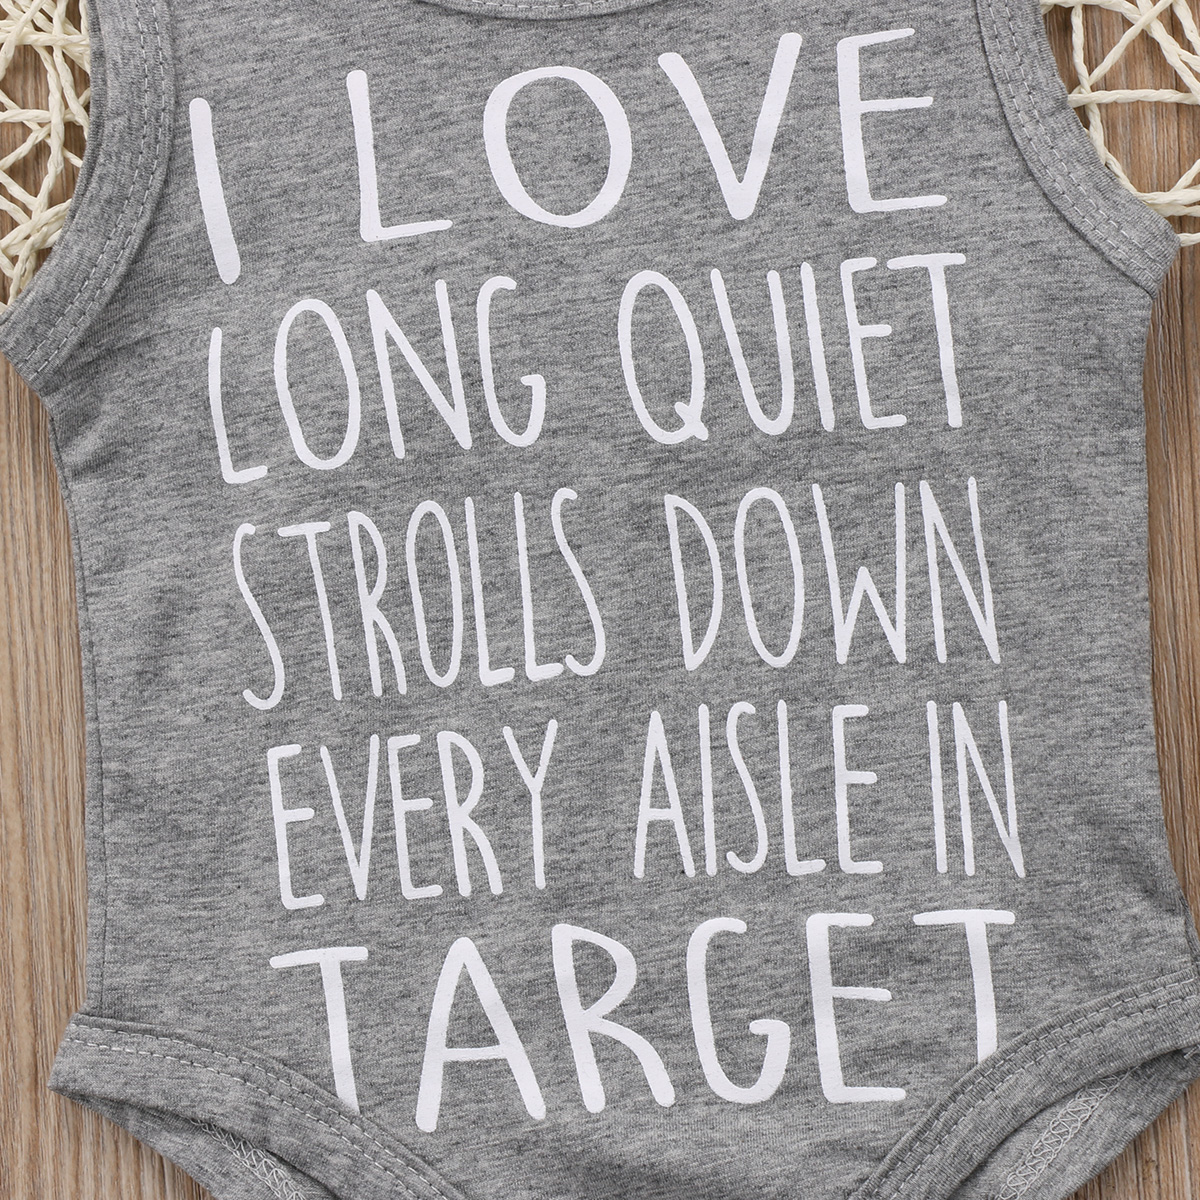 c5a91950a1 2017 I LOVE Target Grey Newborn Baby Boys Girls Infant Romper Jumpsuit  Playsuit Outfits-in Rompers from Mother & Kids on Aliexpress.com | Alibaba  Group